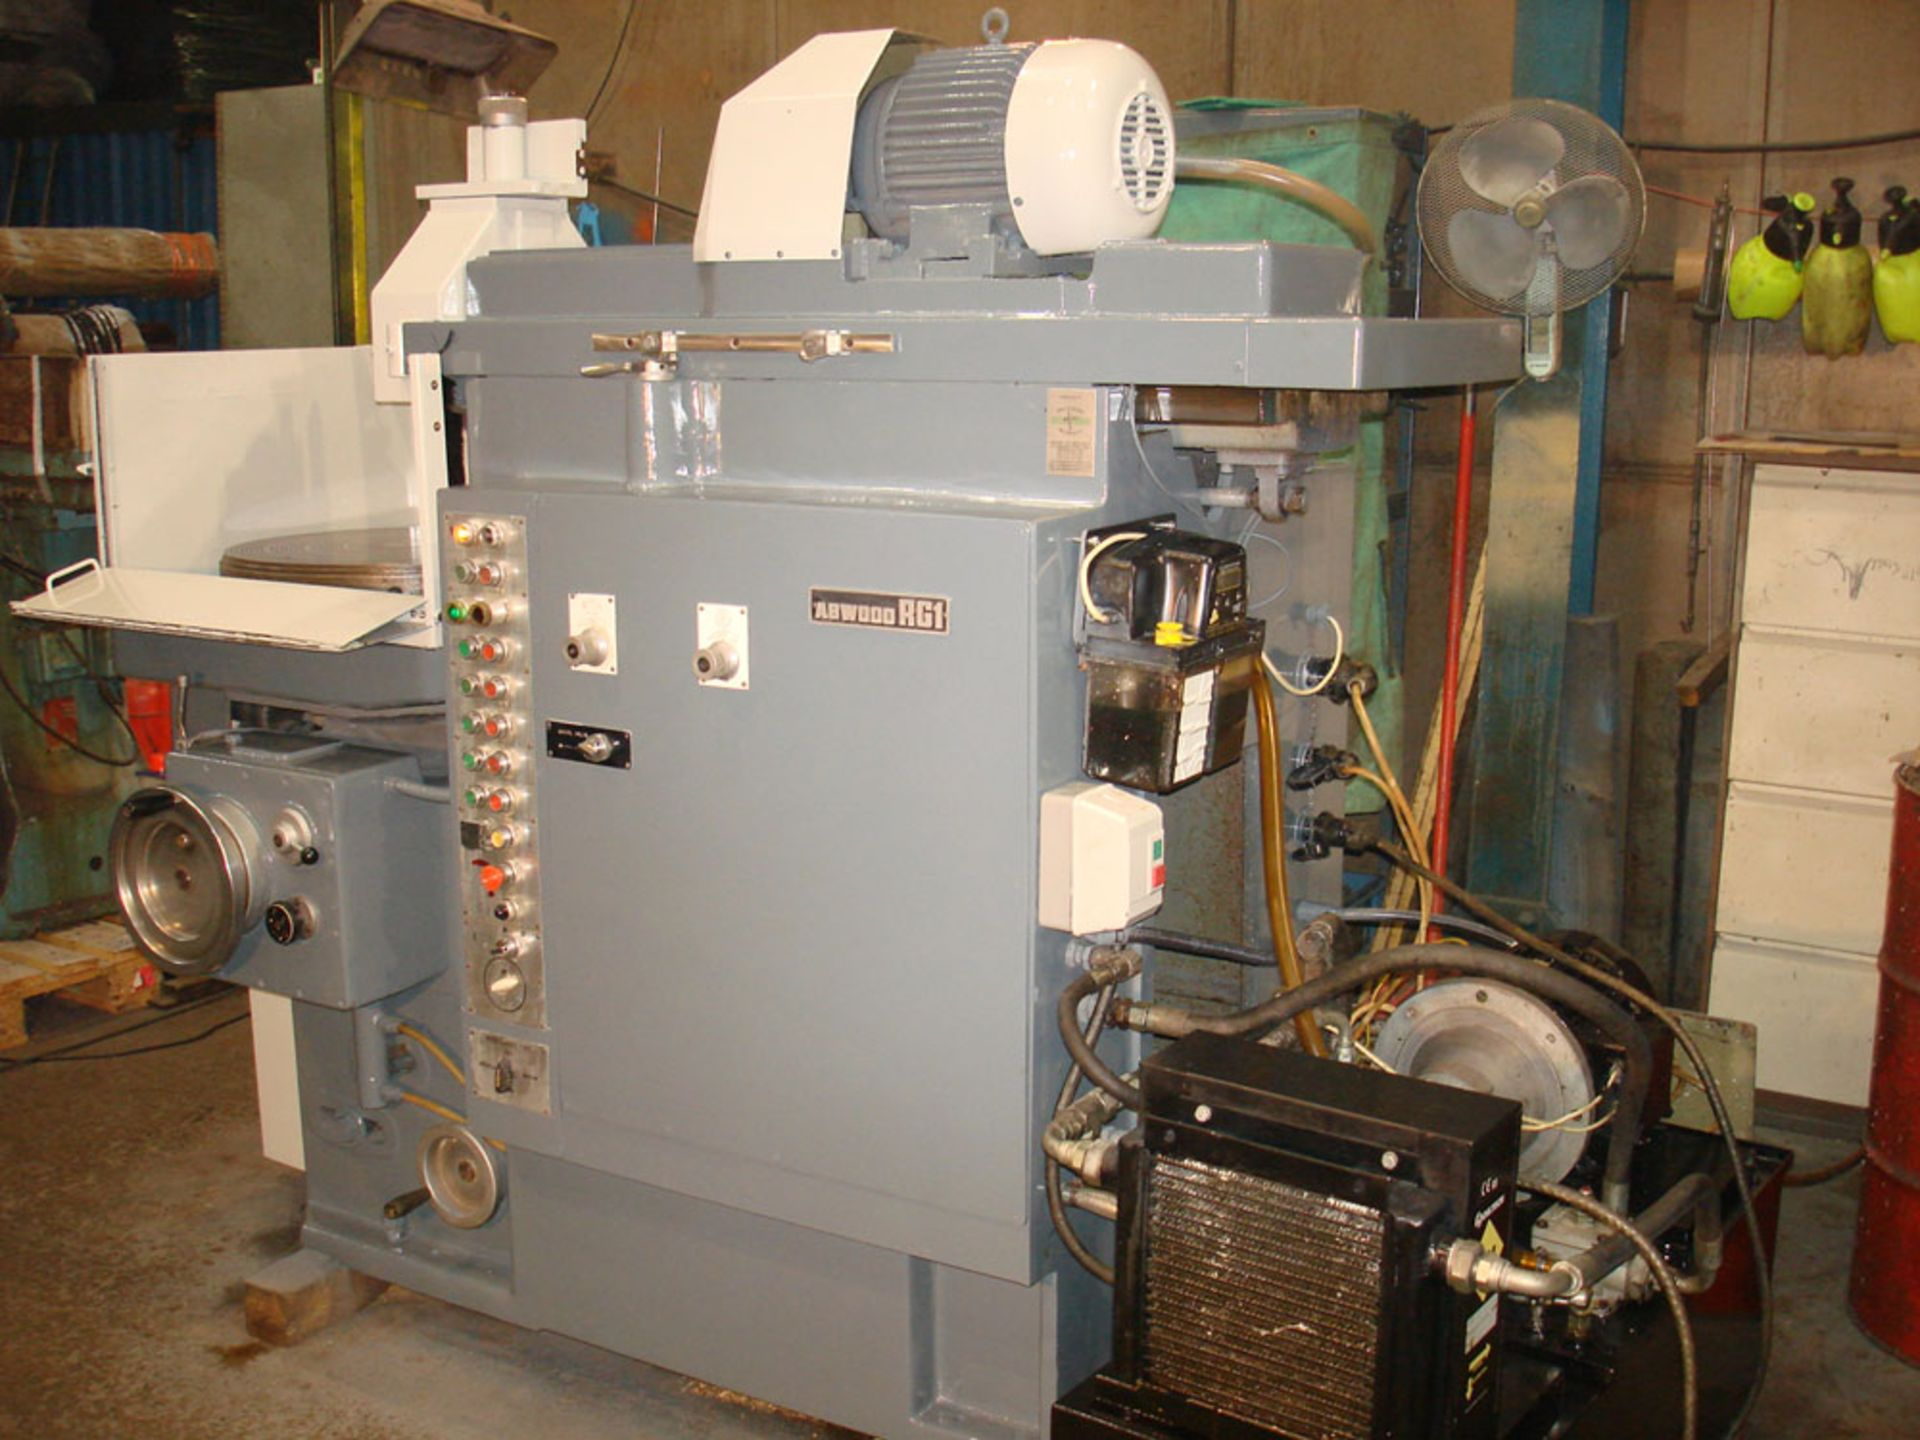 Abwood RG1 Rotary Table Surface Grinder. Magnet Diameter 600mm. - Image 7 of 7